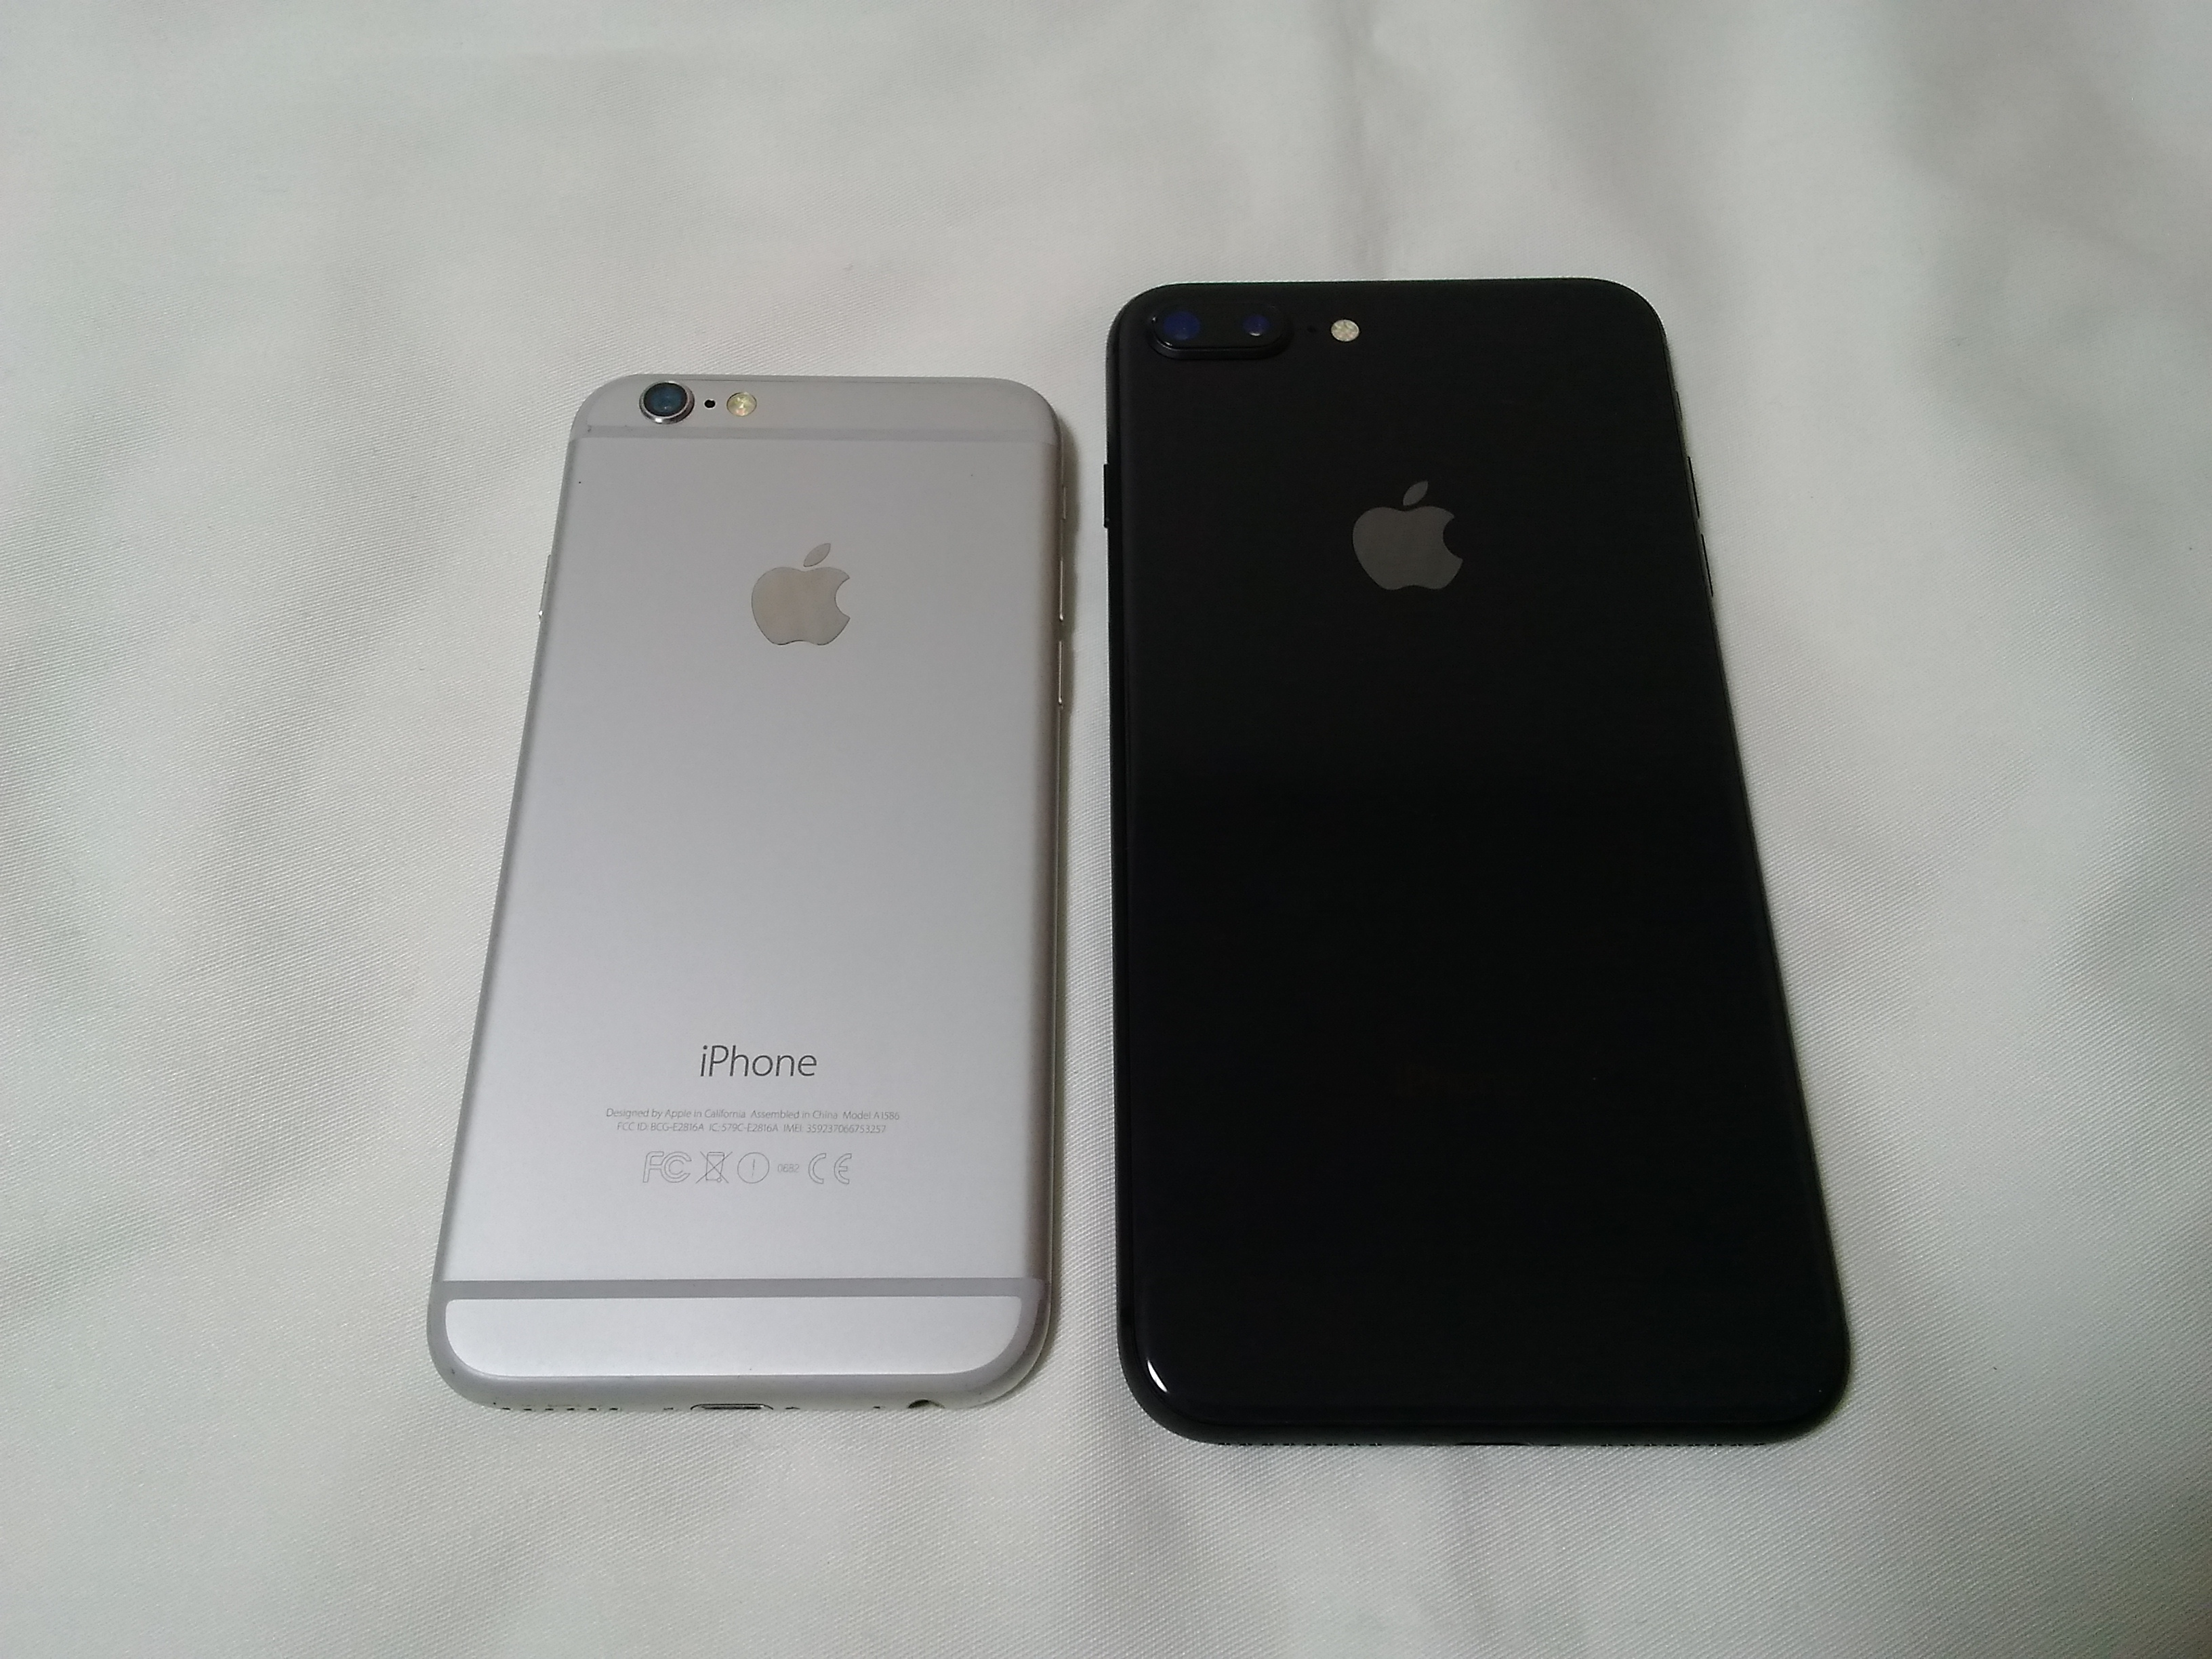 iPhone 8 plusとiPhone 6のサイズ比較